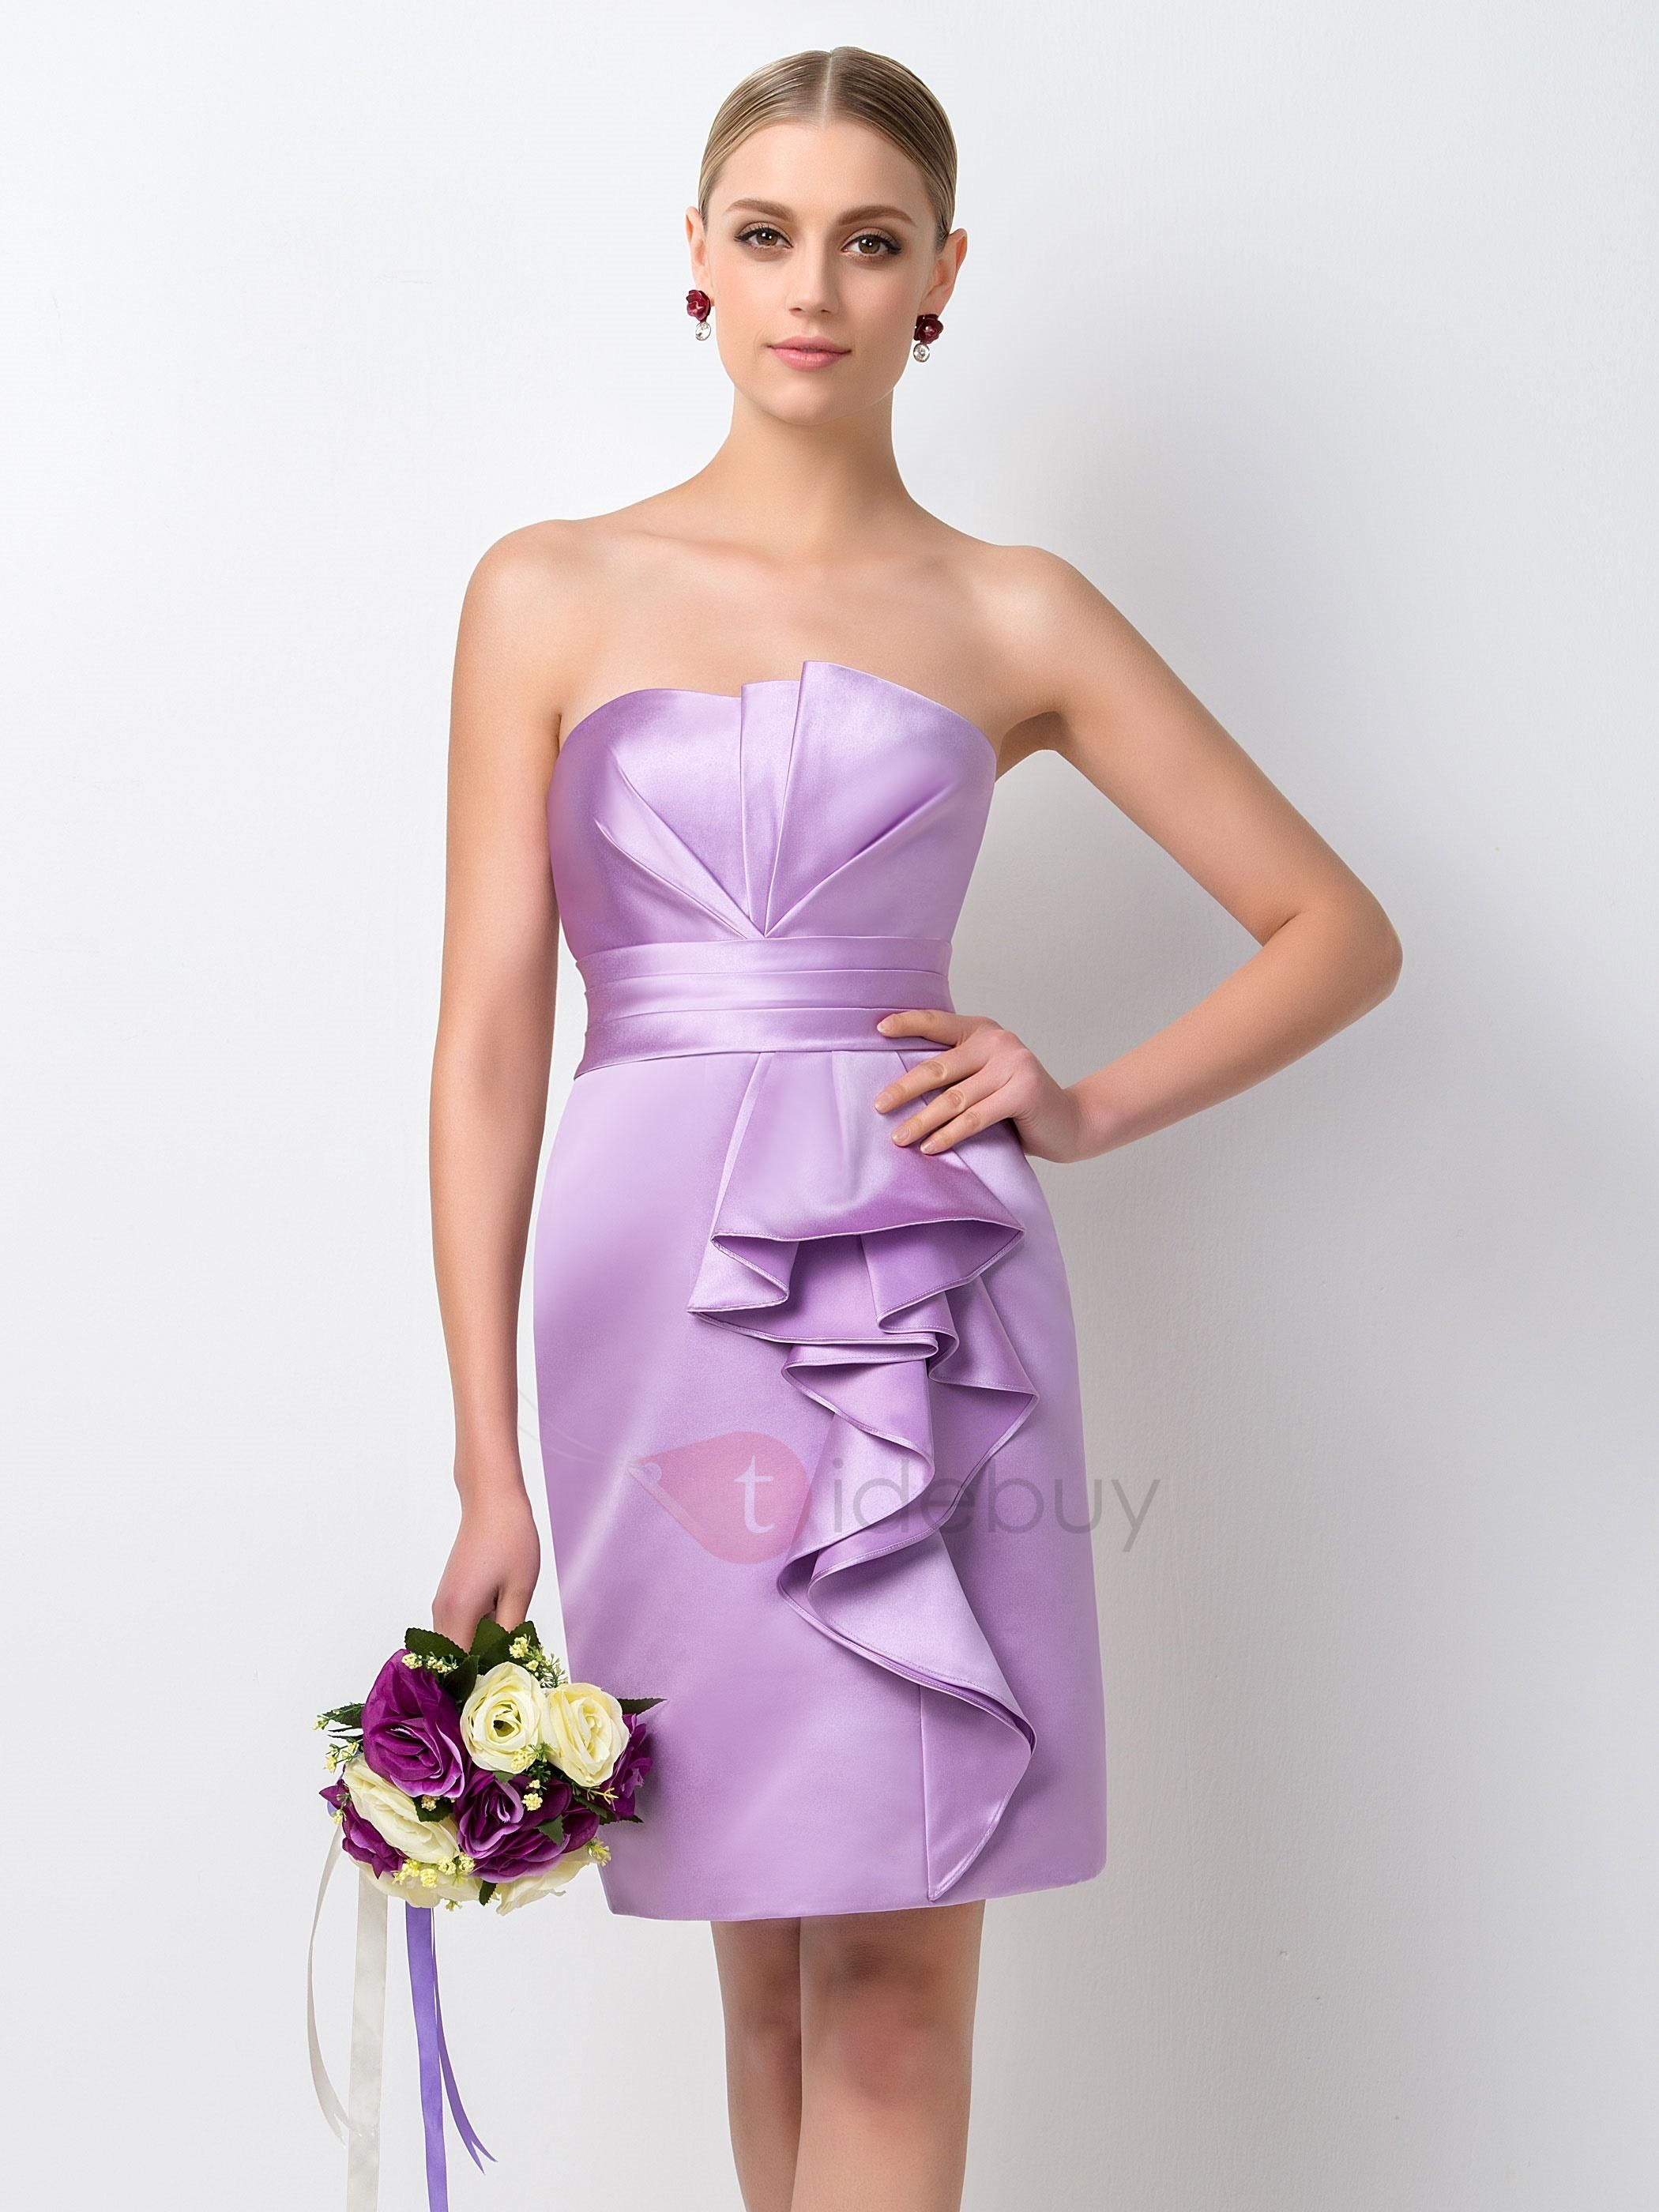 Short purple wedding dresses  TideBuy  TideBuy Concise Strapless Sheath Short Purple Bridesmaid